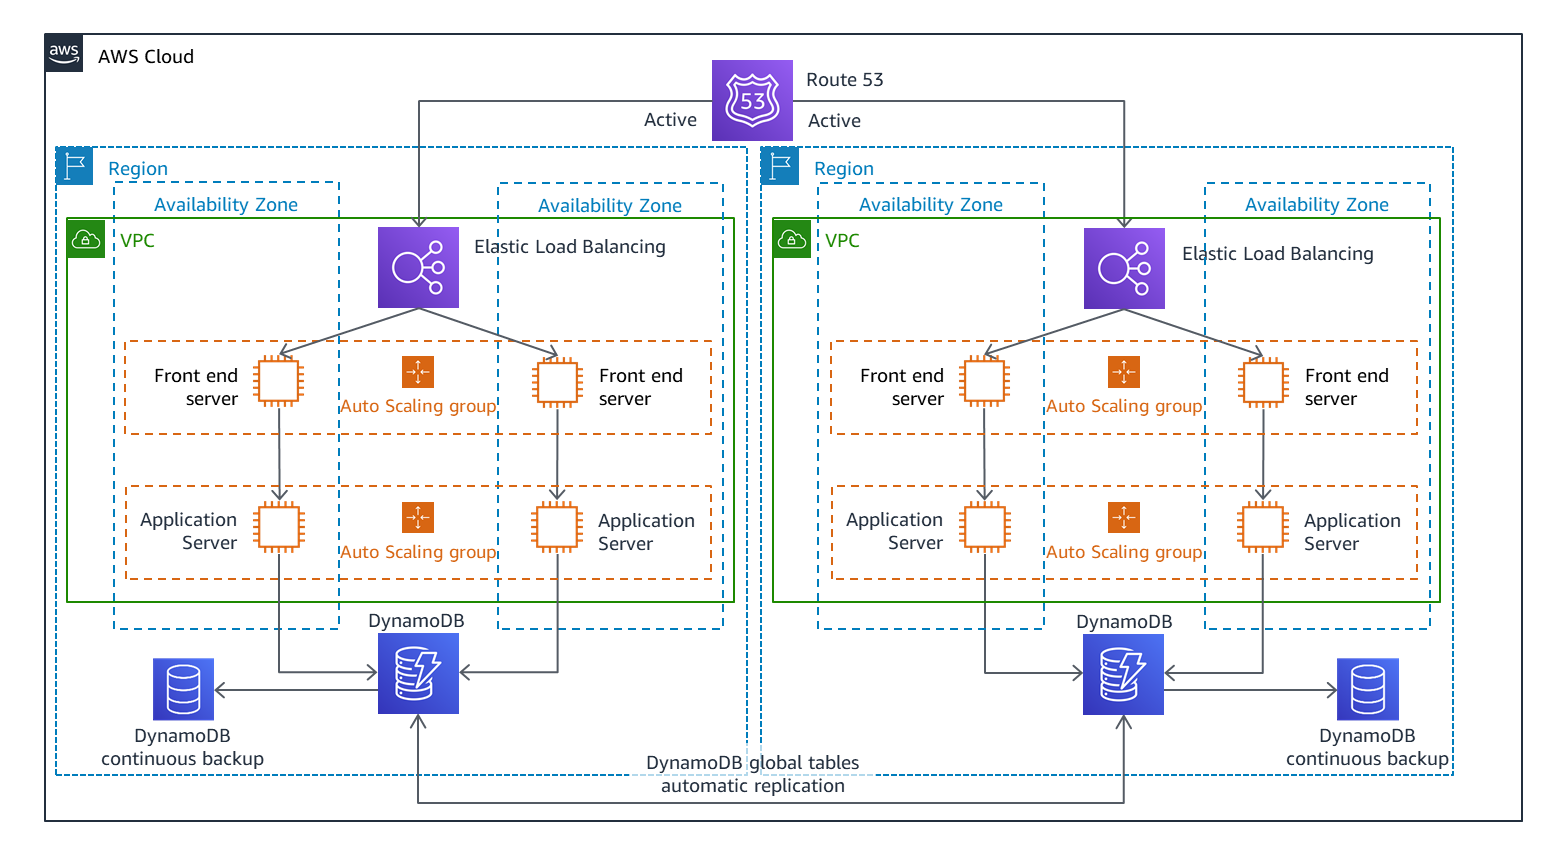 Multi-site active/active DR architecture